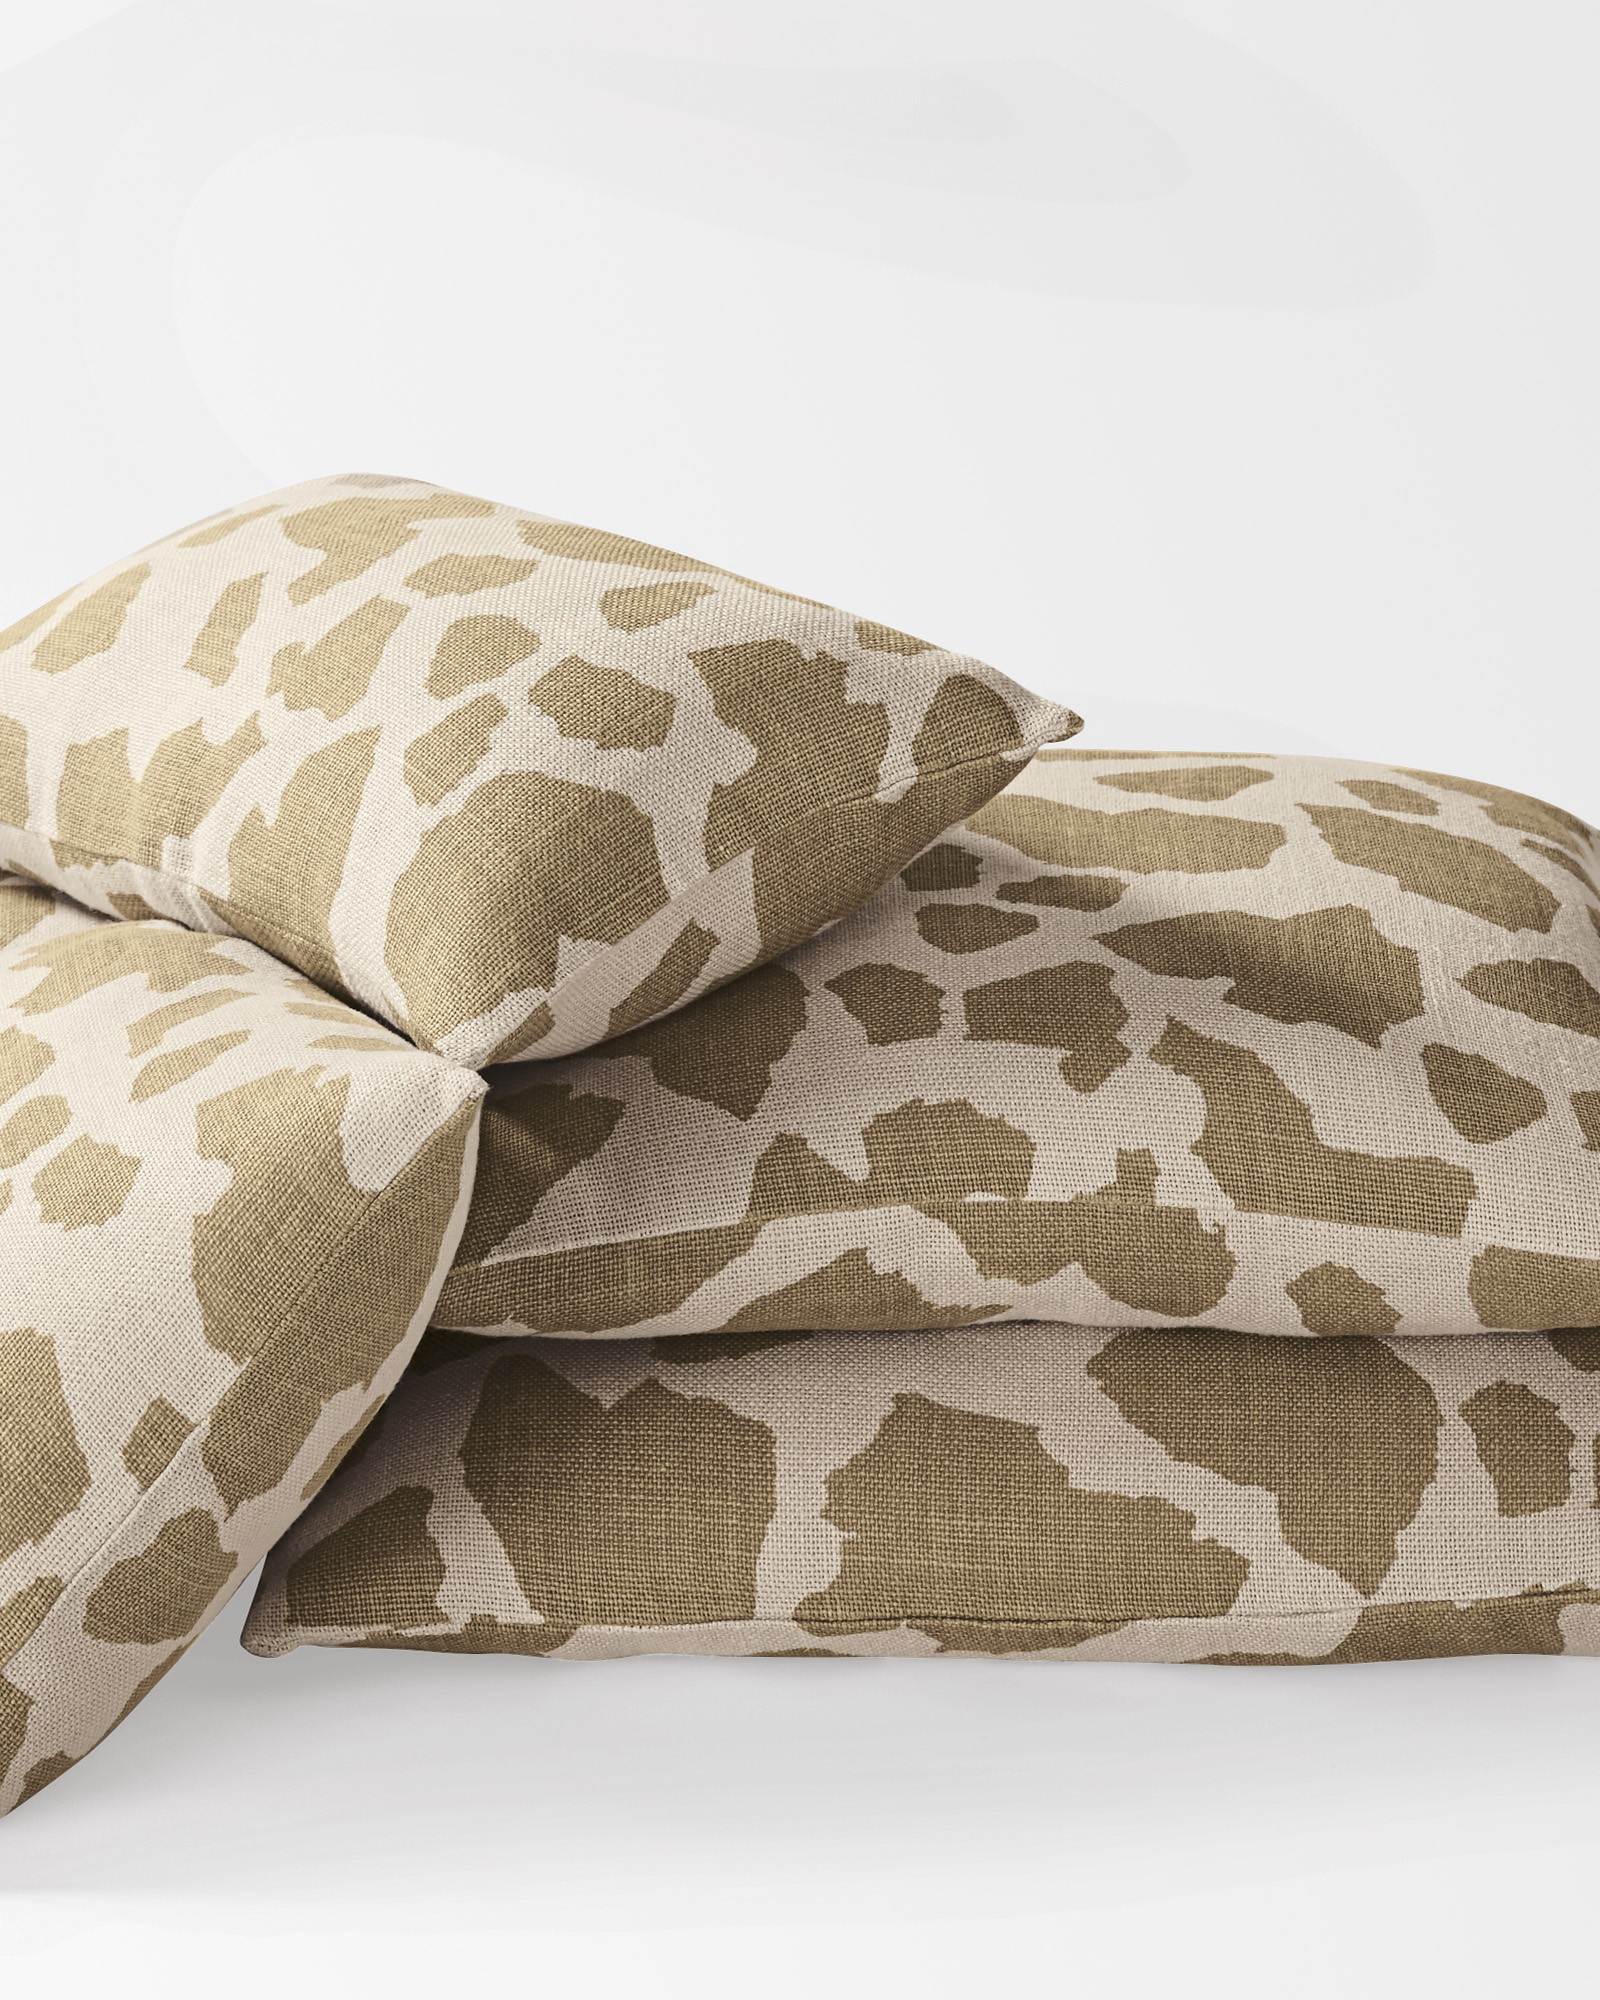 Apartminty Fresh Picks | Animal Theme | Giraffe Print Pillow Covers